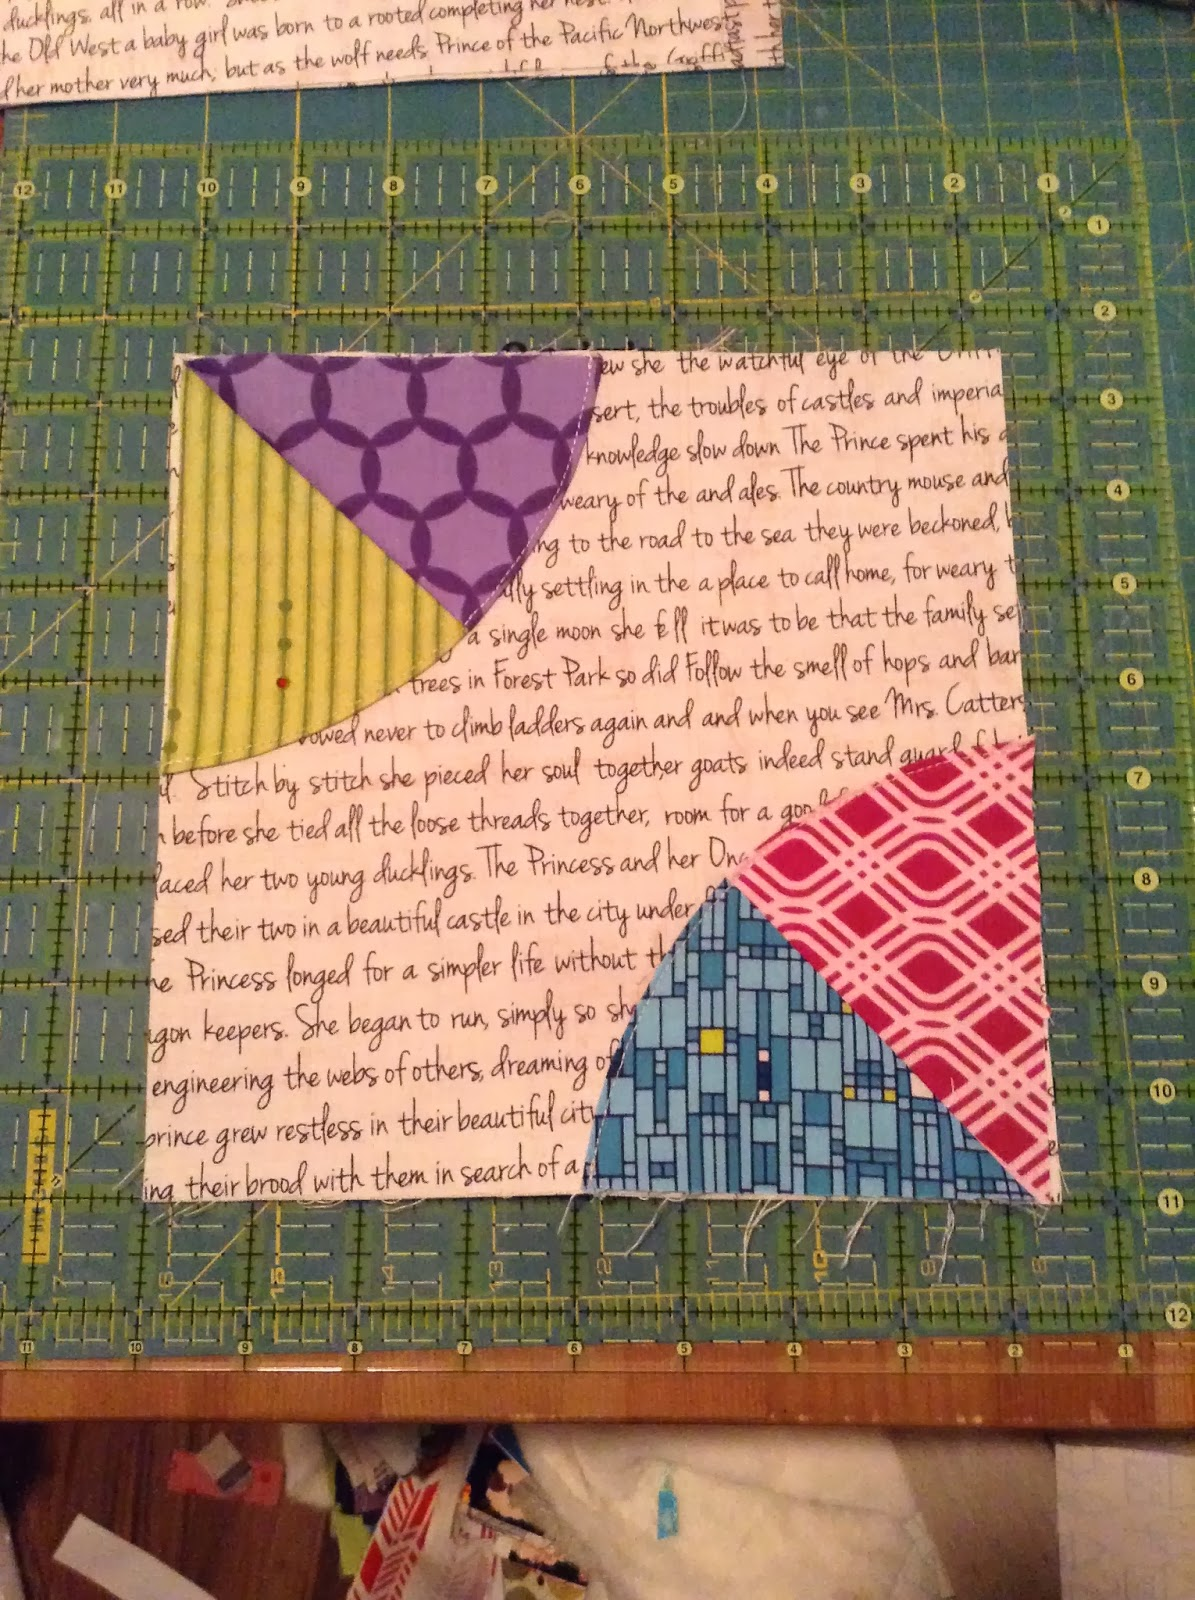 Slice of Pie Block - photo from Lethargic Lass